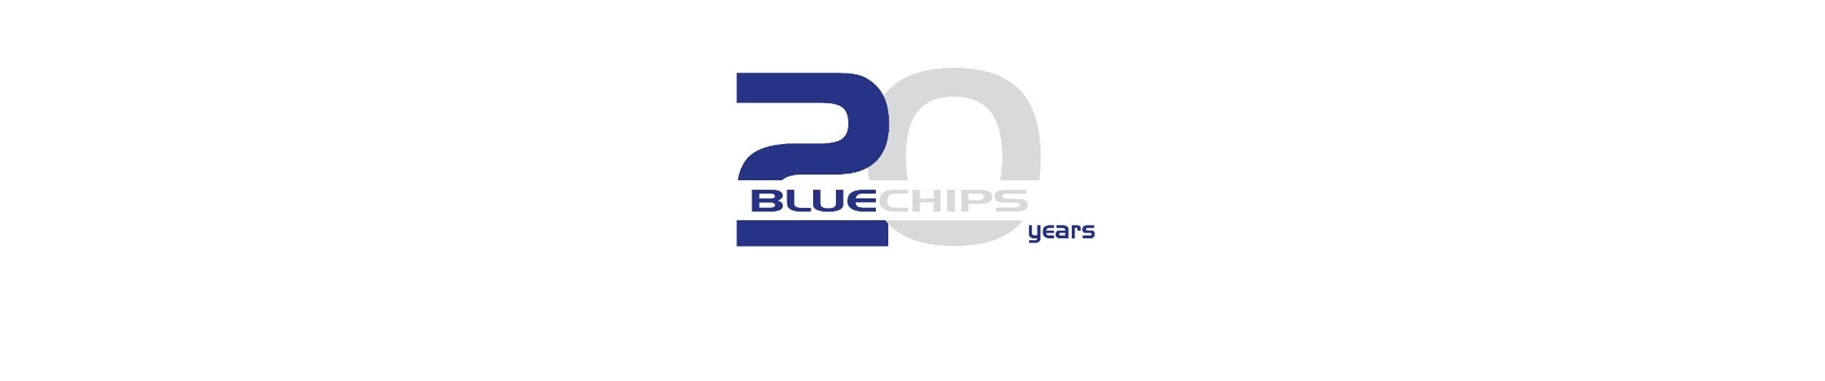 20 Years of Bluechips